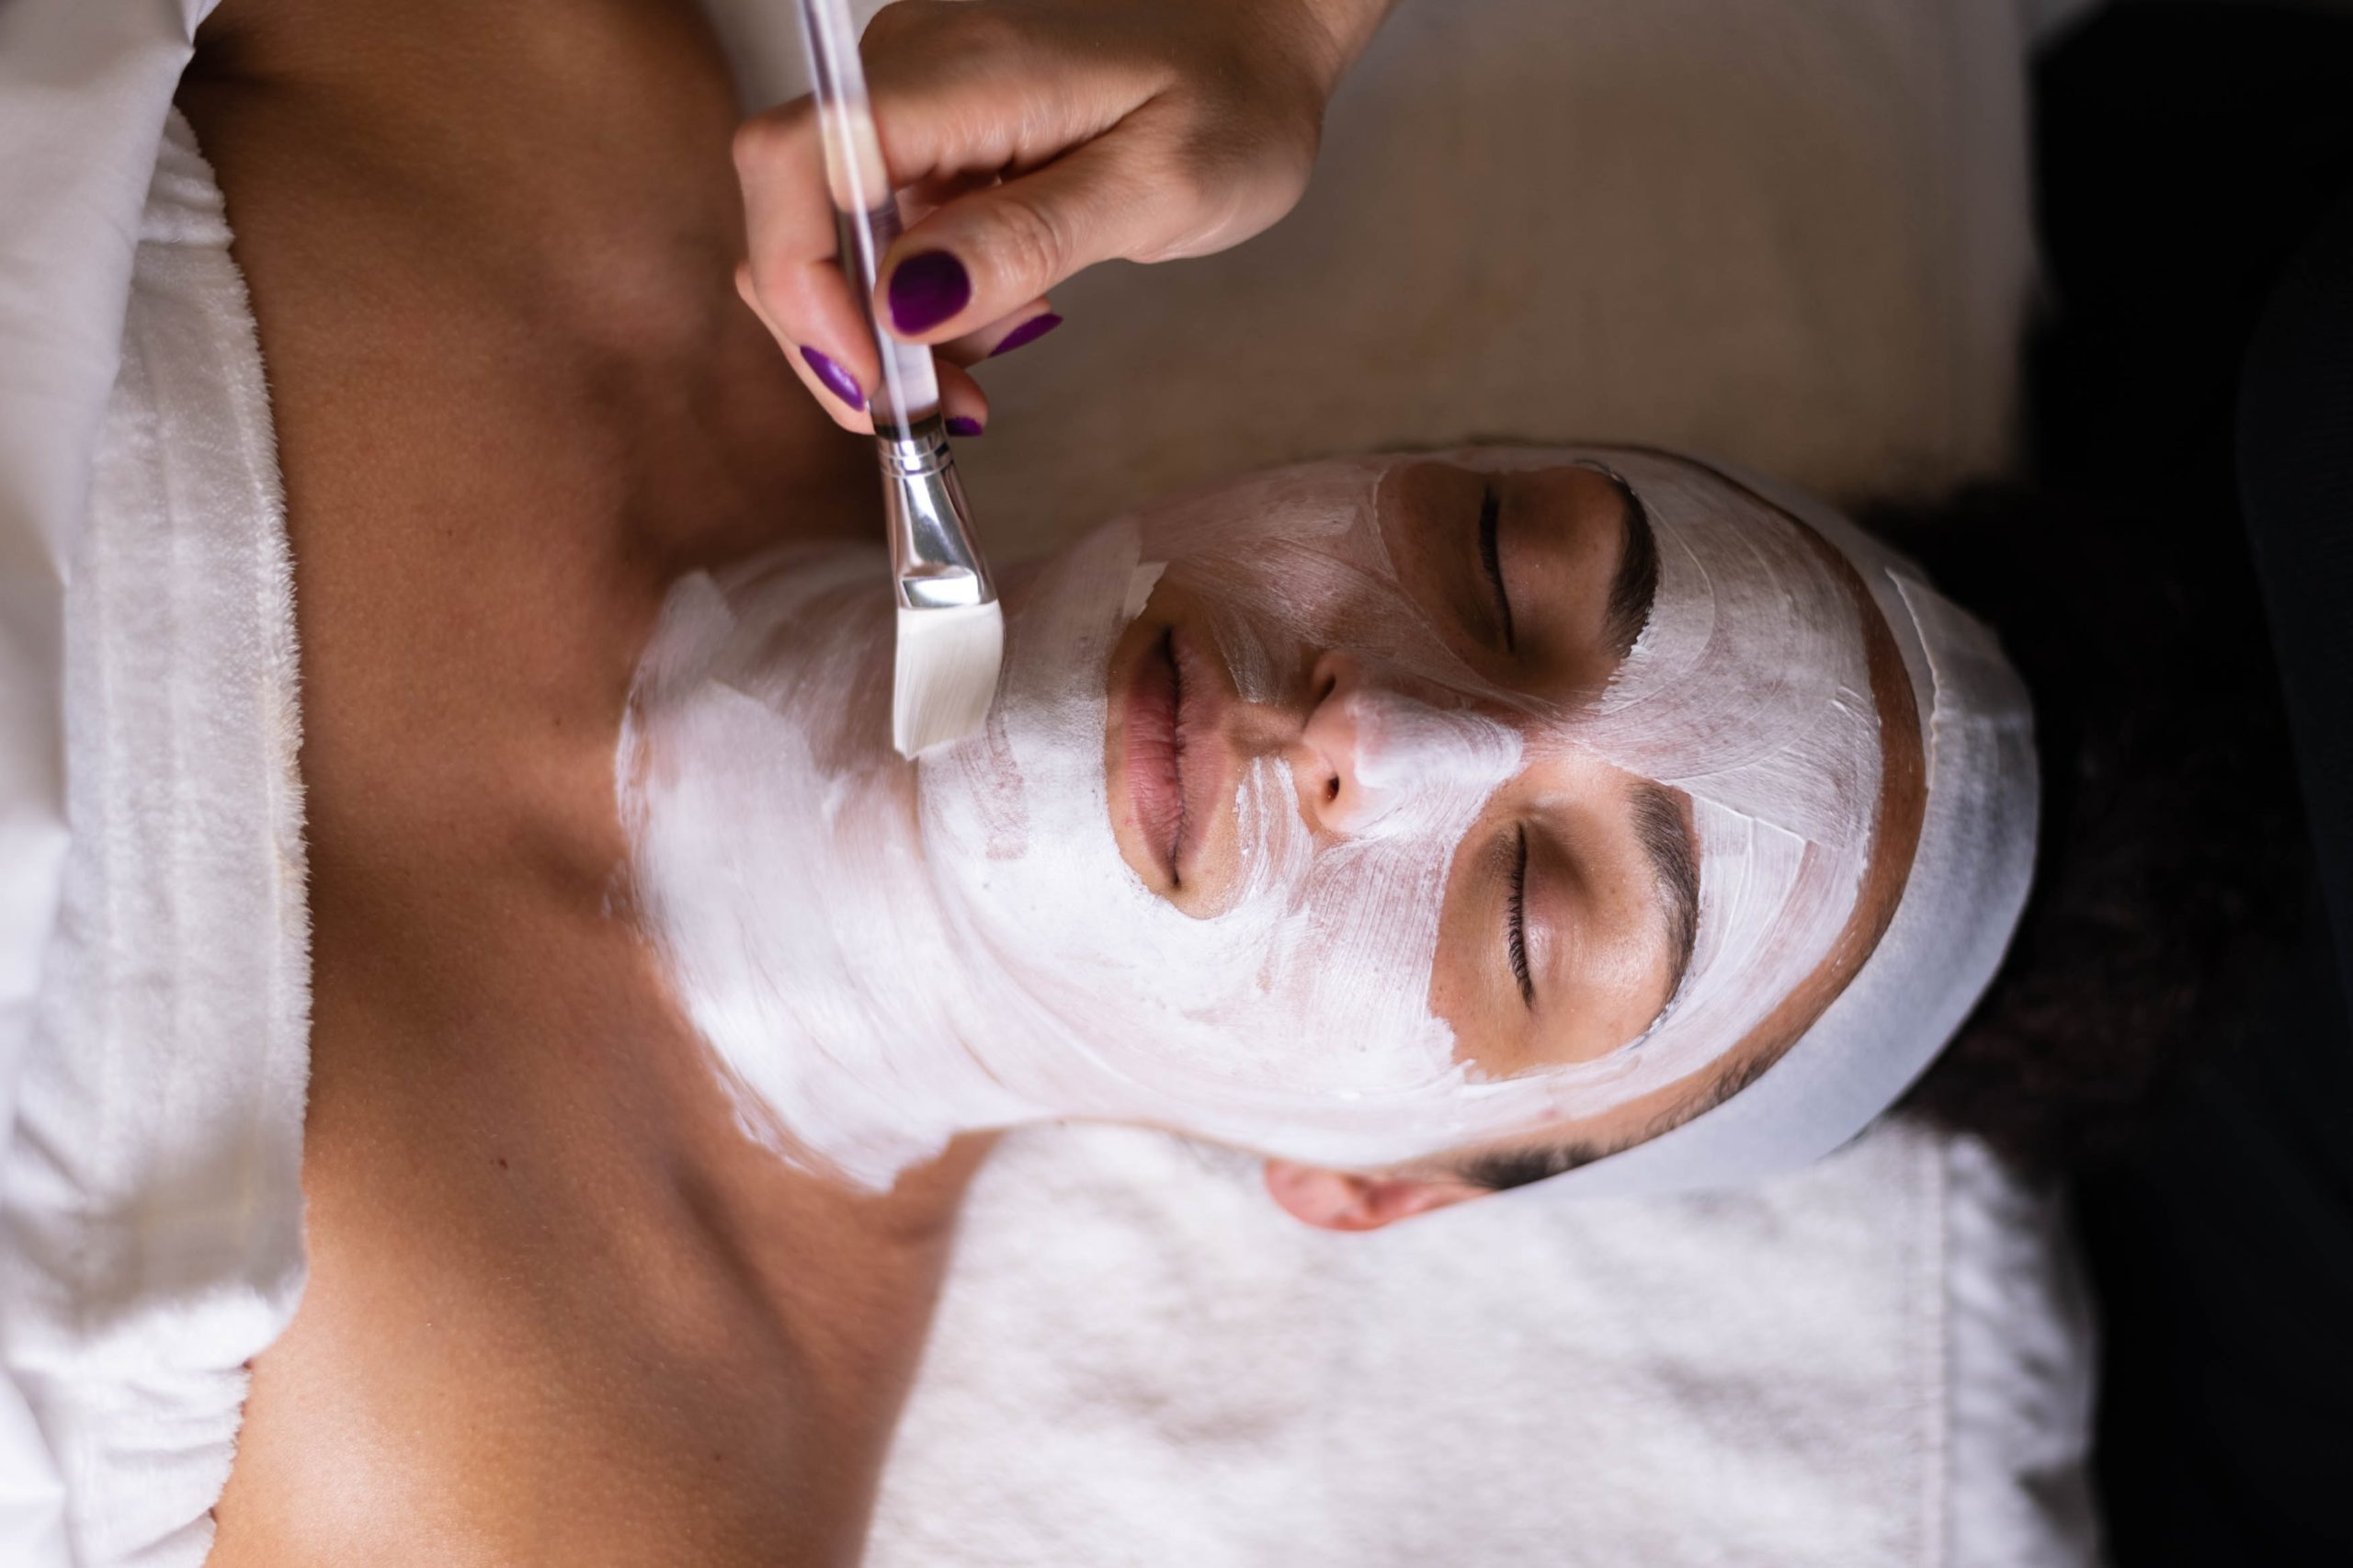 Ask An Esthetician: Can I Get a Facial while on Tretinoin?